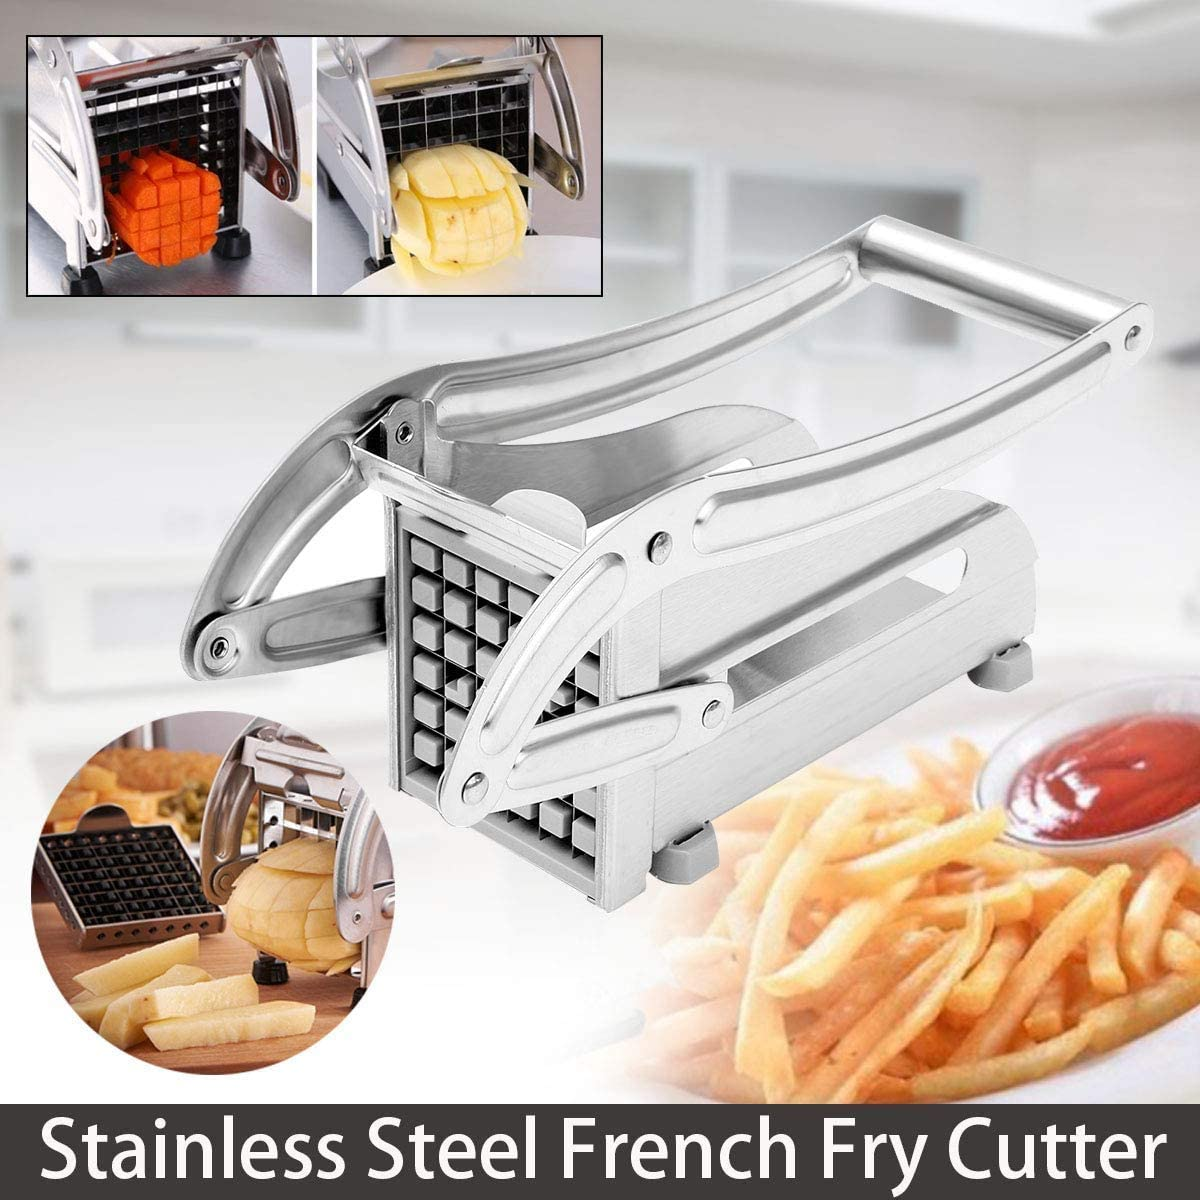 Set of Stainless Steel Potato Chipper /& Pizza Slicer-French Fries /& Pizza Slicer-Cutter Chopper for Fruit-Veg-Potato,Pizzas and Pastries